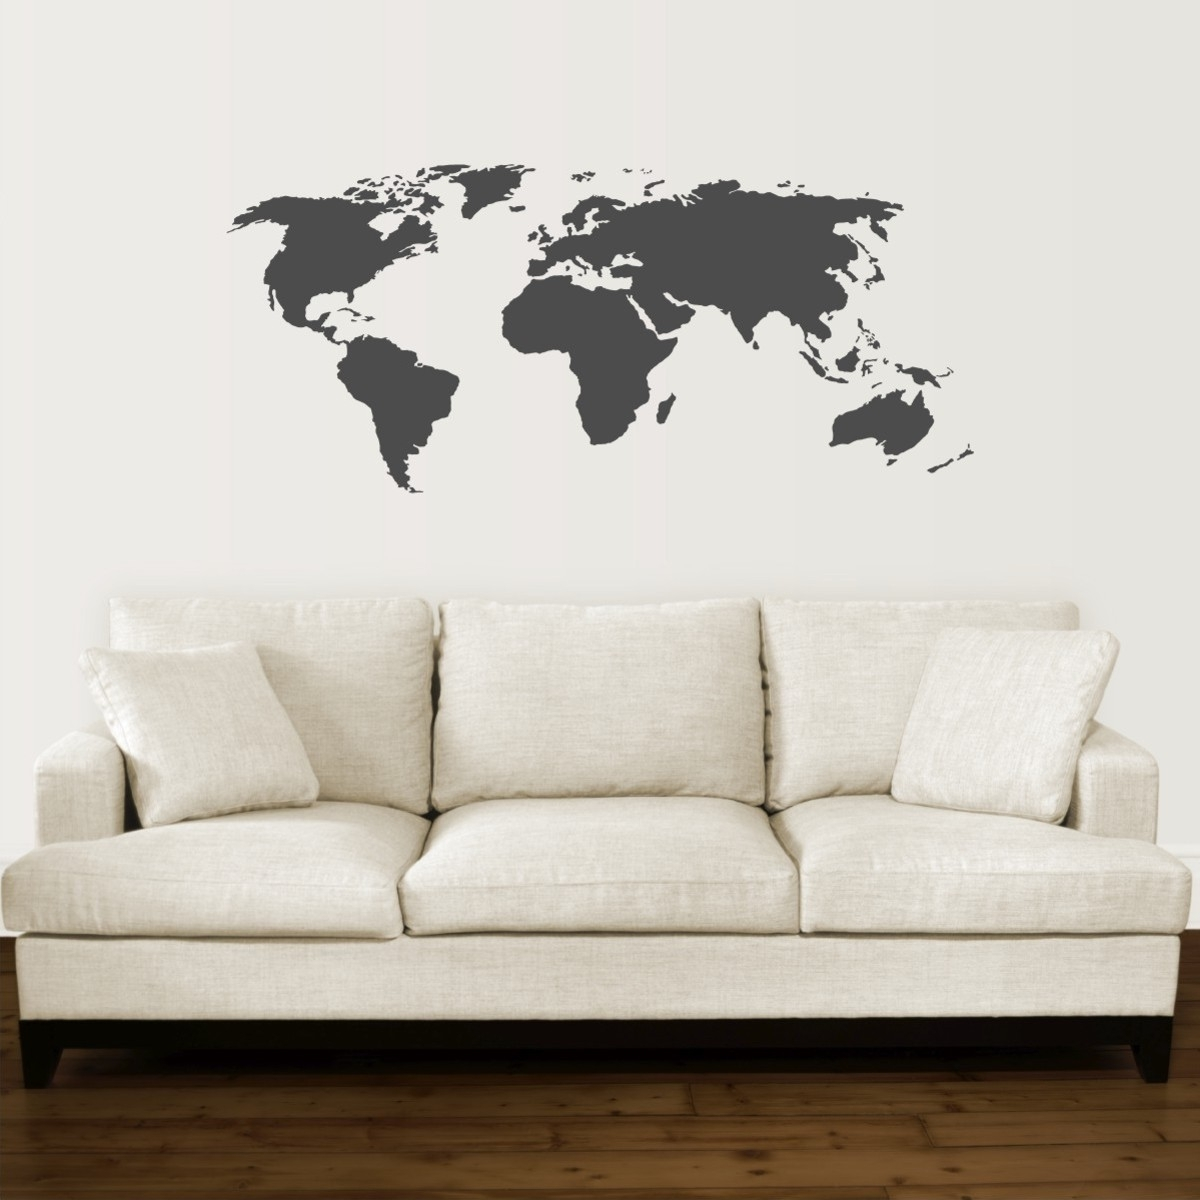 17 Cool Ideas For World Map Wall Art – Live Diy Ideas Pertaining To Best And Newest Cool Wall Art (View 13 of 15)